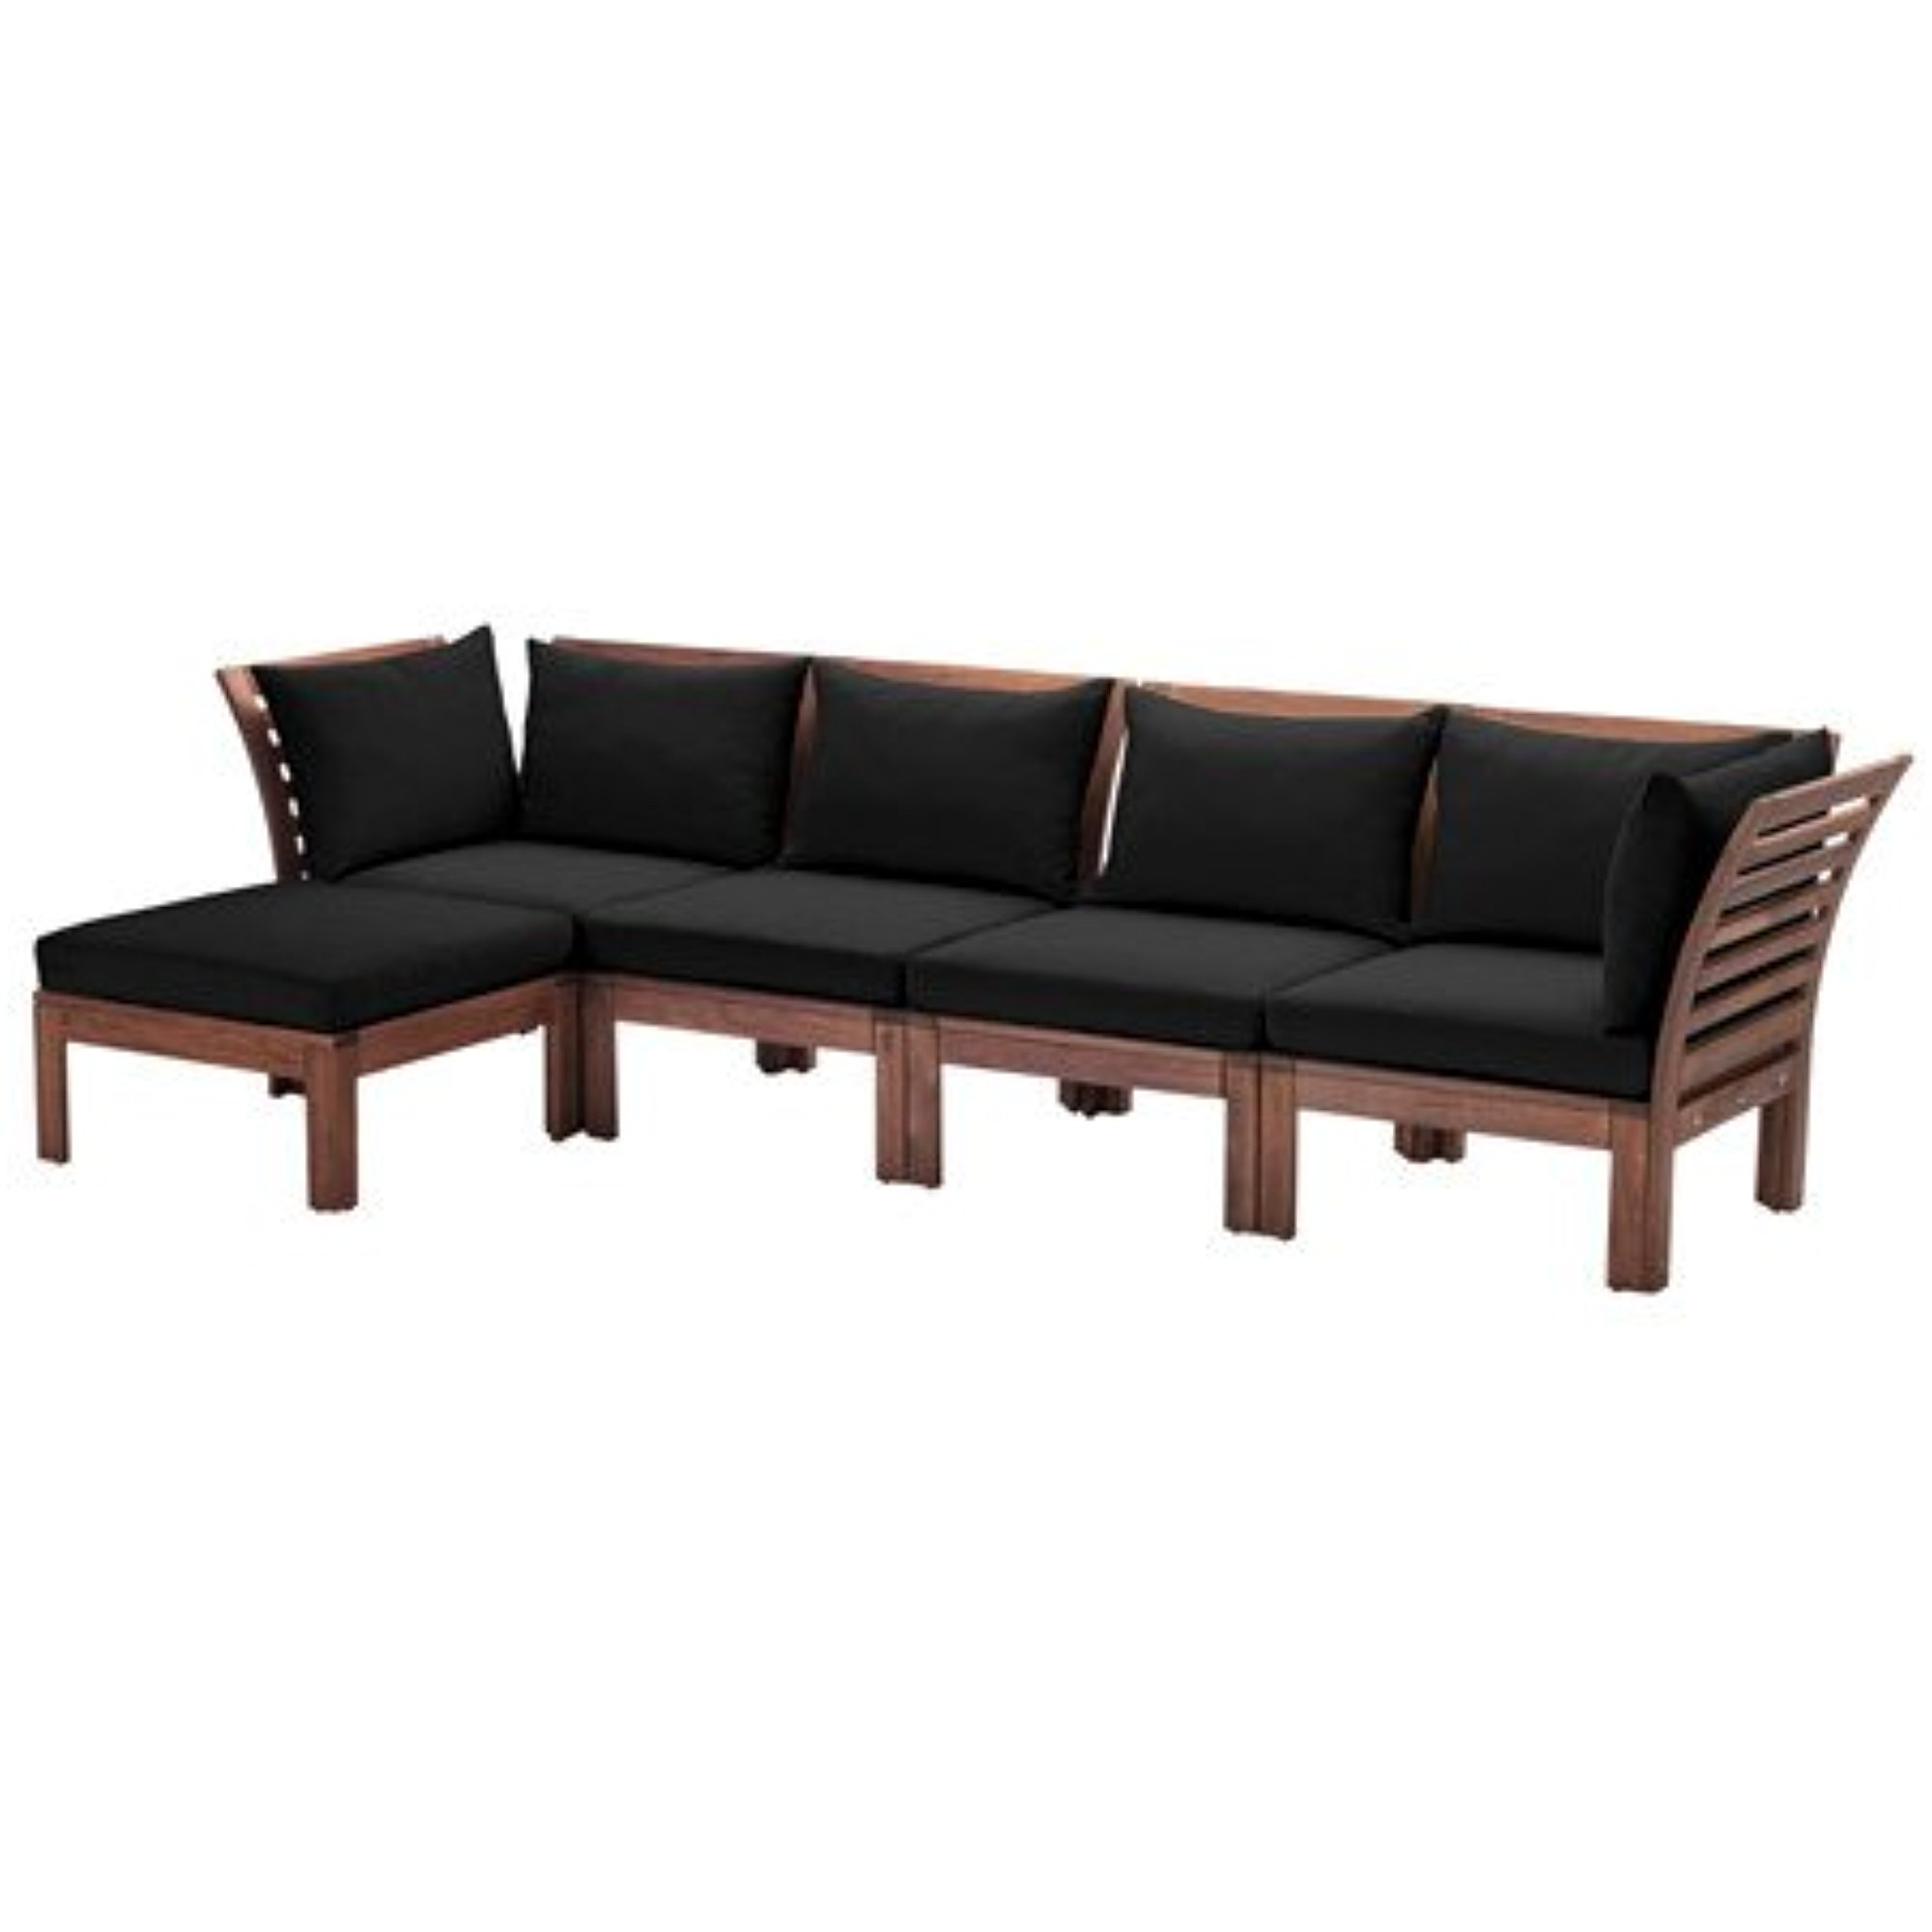 Ikea 4-seat sofa with footstool, outdoor, brown stained, black , 56 1/4/112  5/8x31 1/2x28 3/4 \